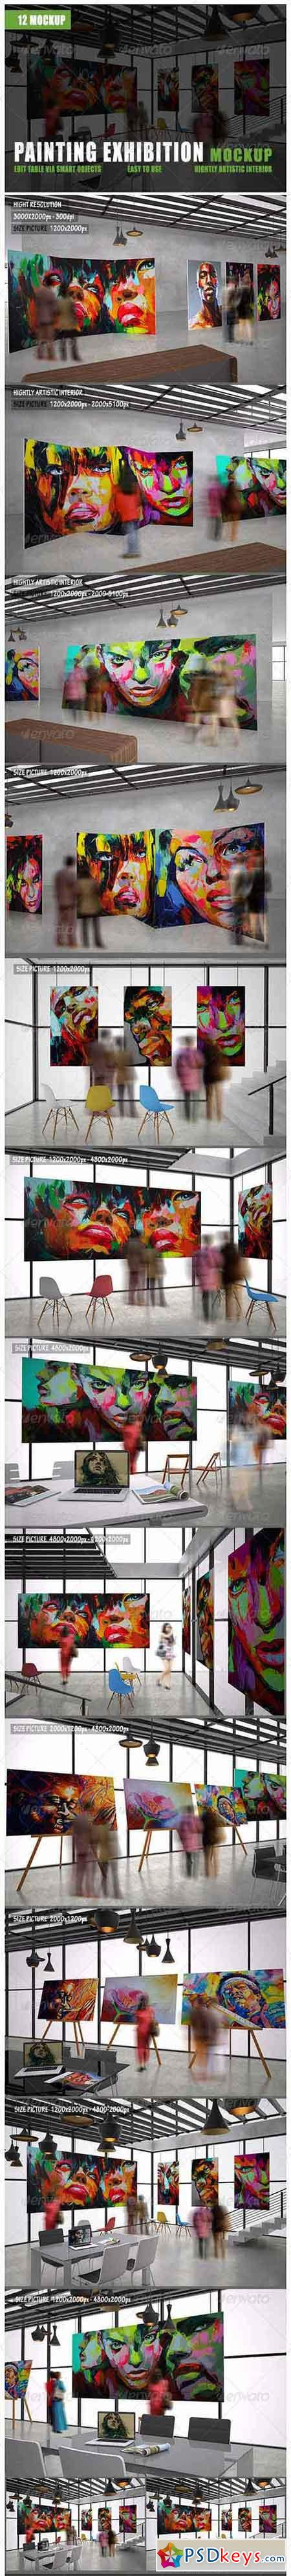 Painting Exhibition Mockup 7850787